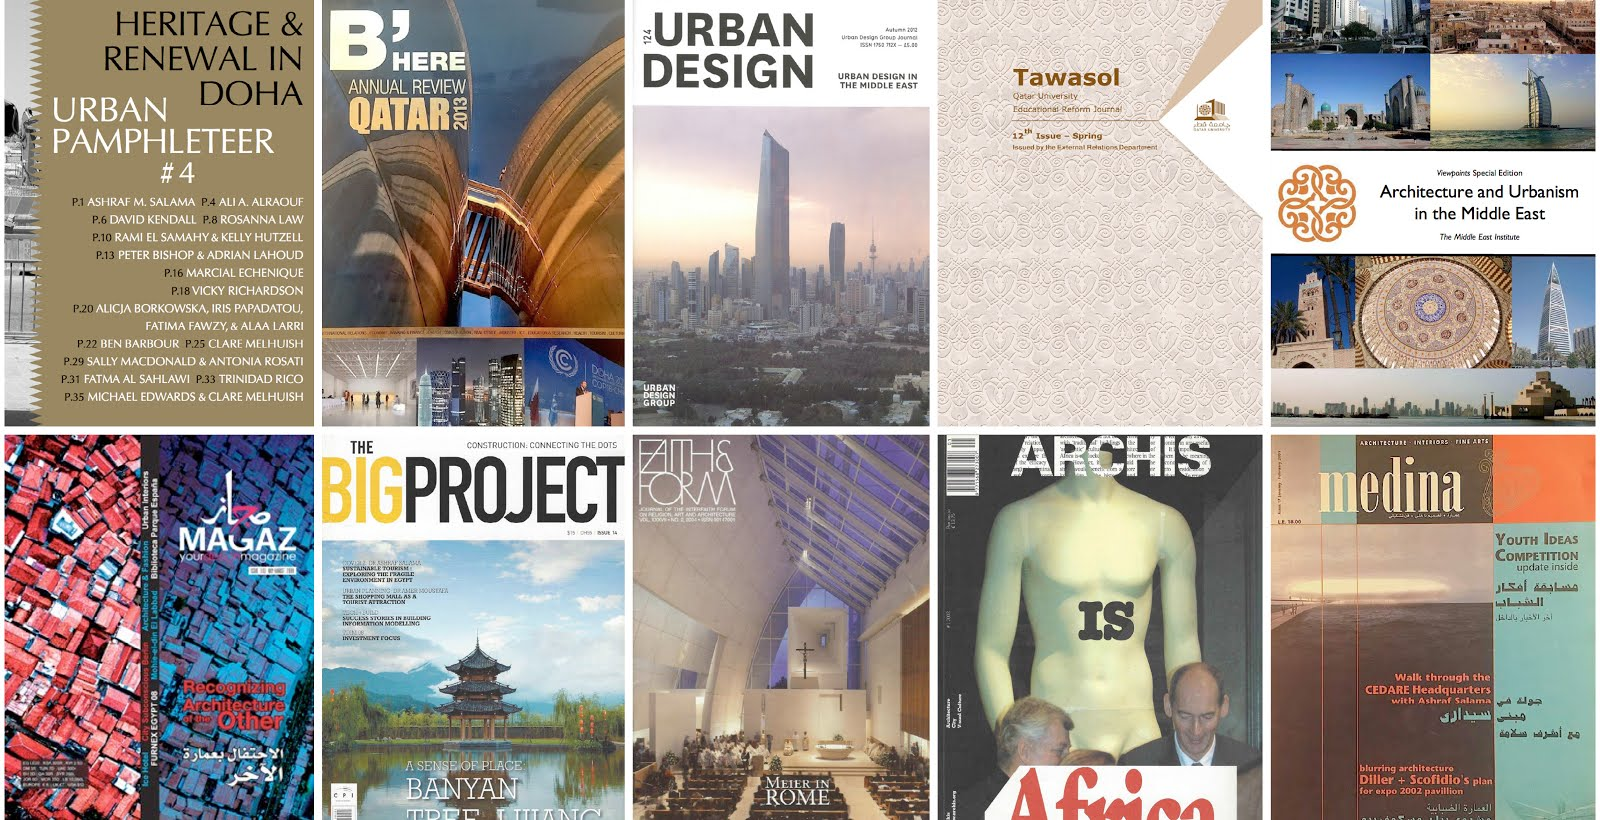 professor ashraf m salama critical essays the following is a list of selected essays published over the past two decades in international and regional trade design and architecture magazines